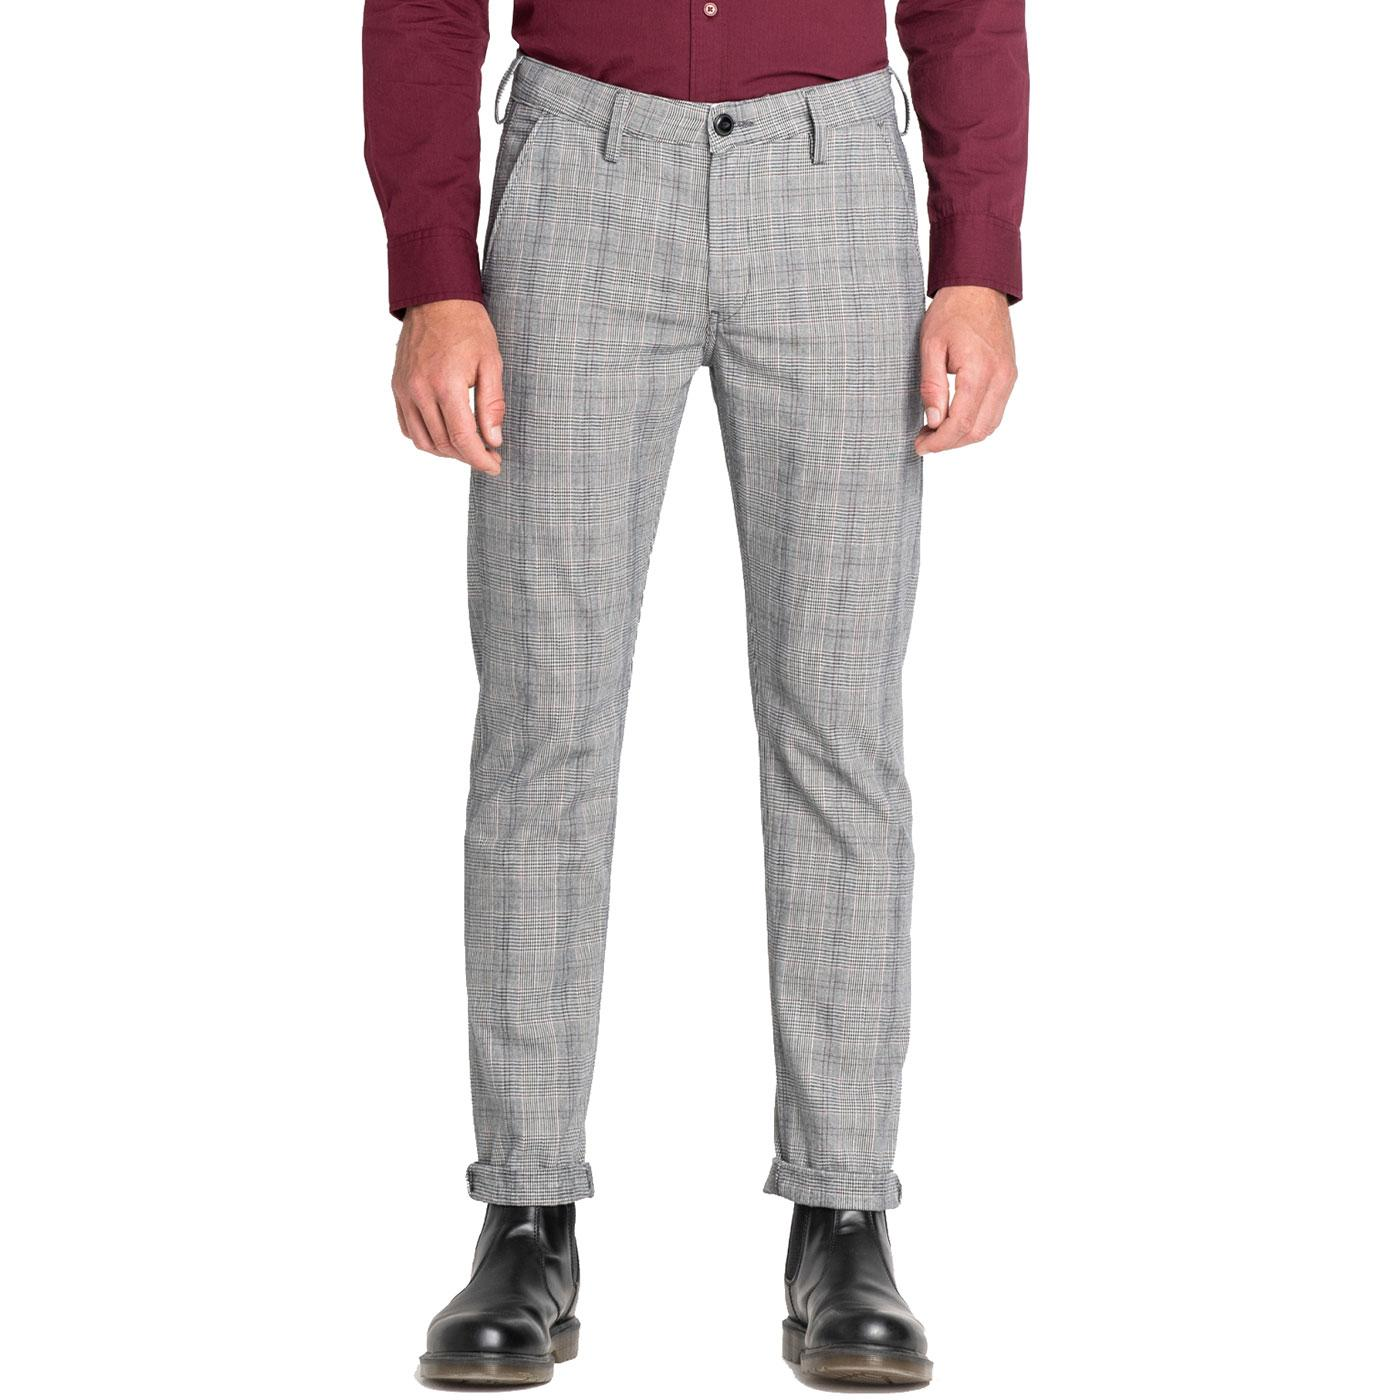 LEE JEANS Mod Prince Of Wales Check Chino Trousers